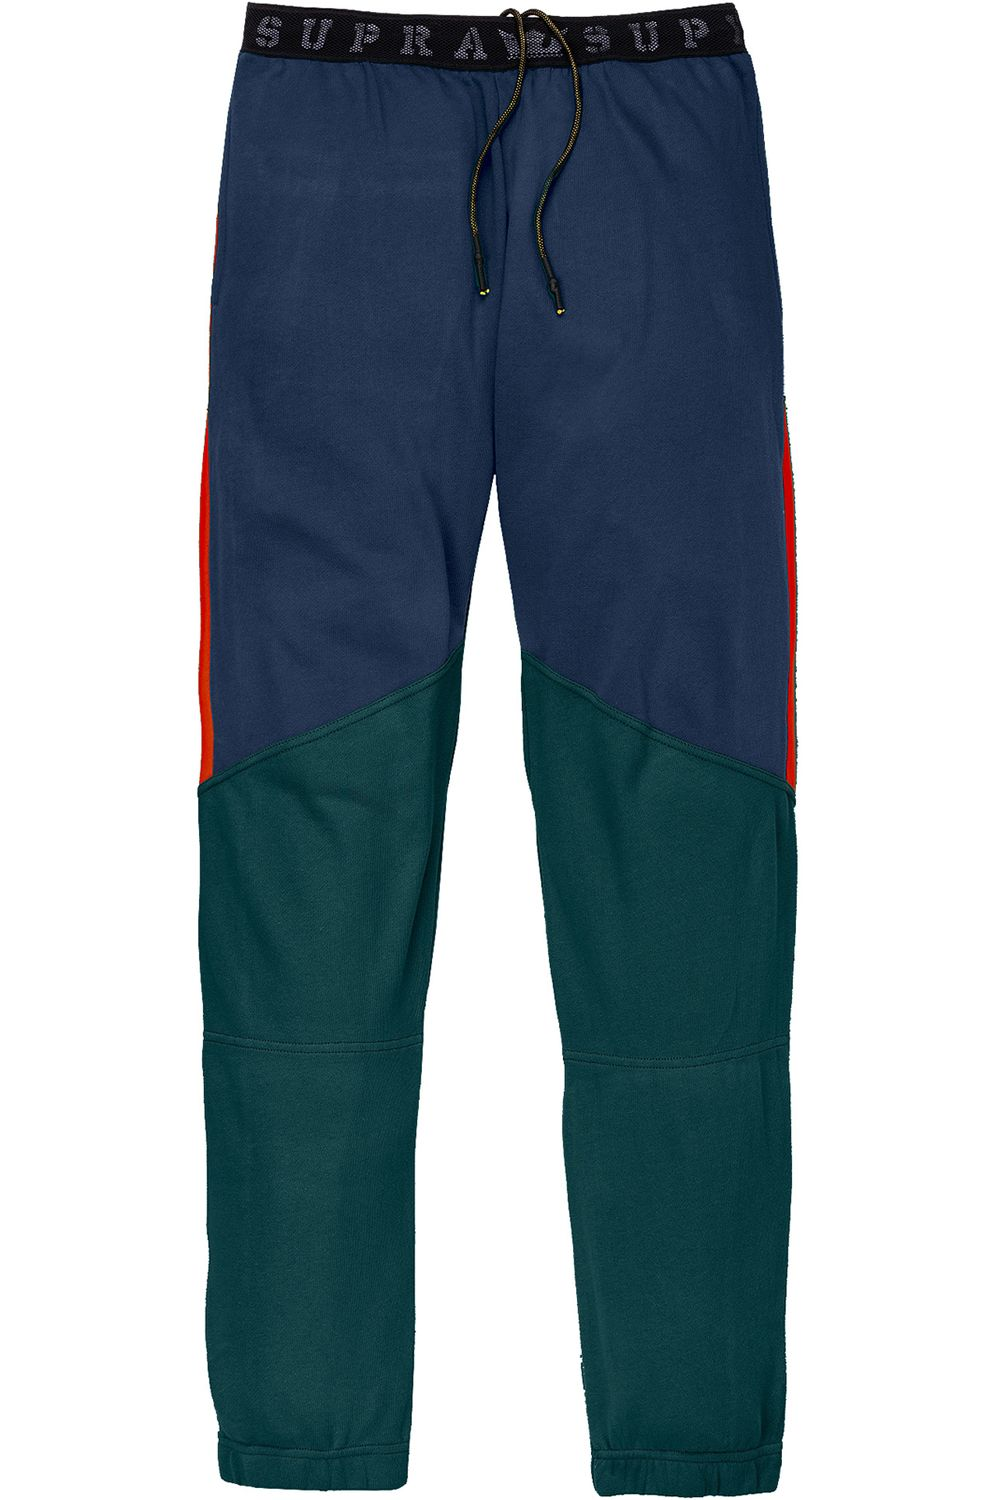 Supra Pants 92 FLEECE Evergreen